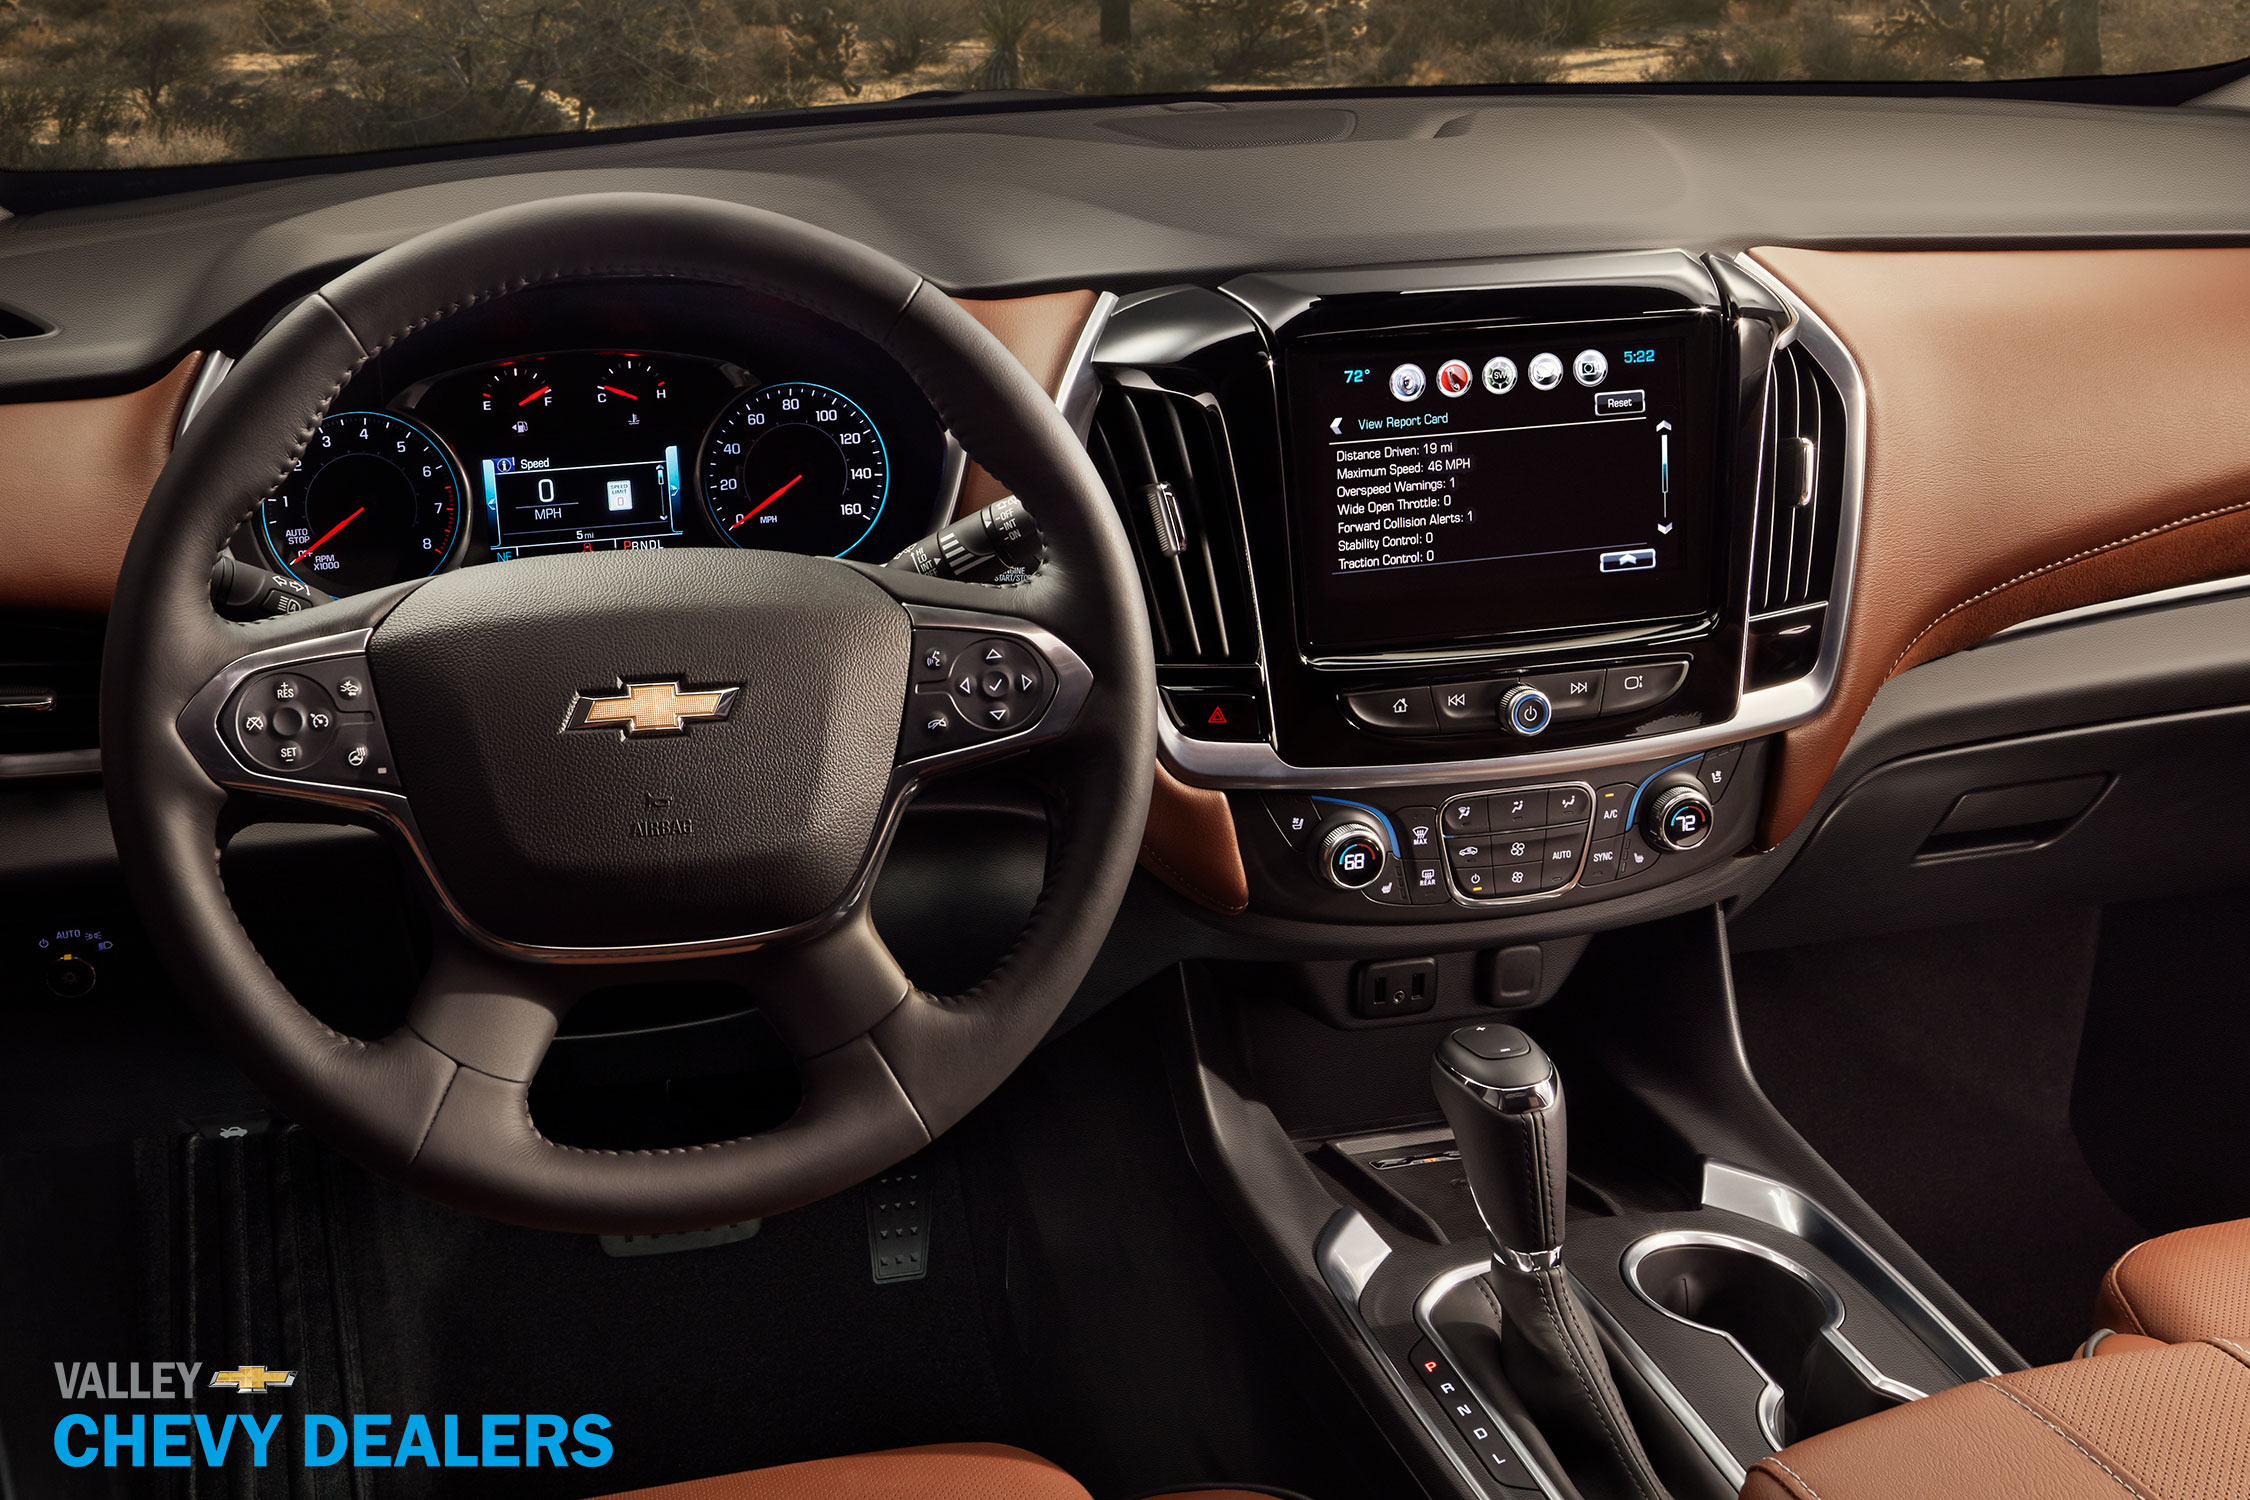 Valley Chevy - 2017 Chevrolet Traverse: Driver's Console